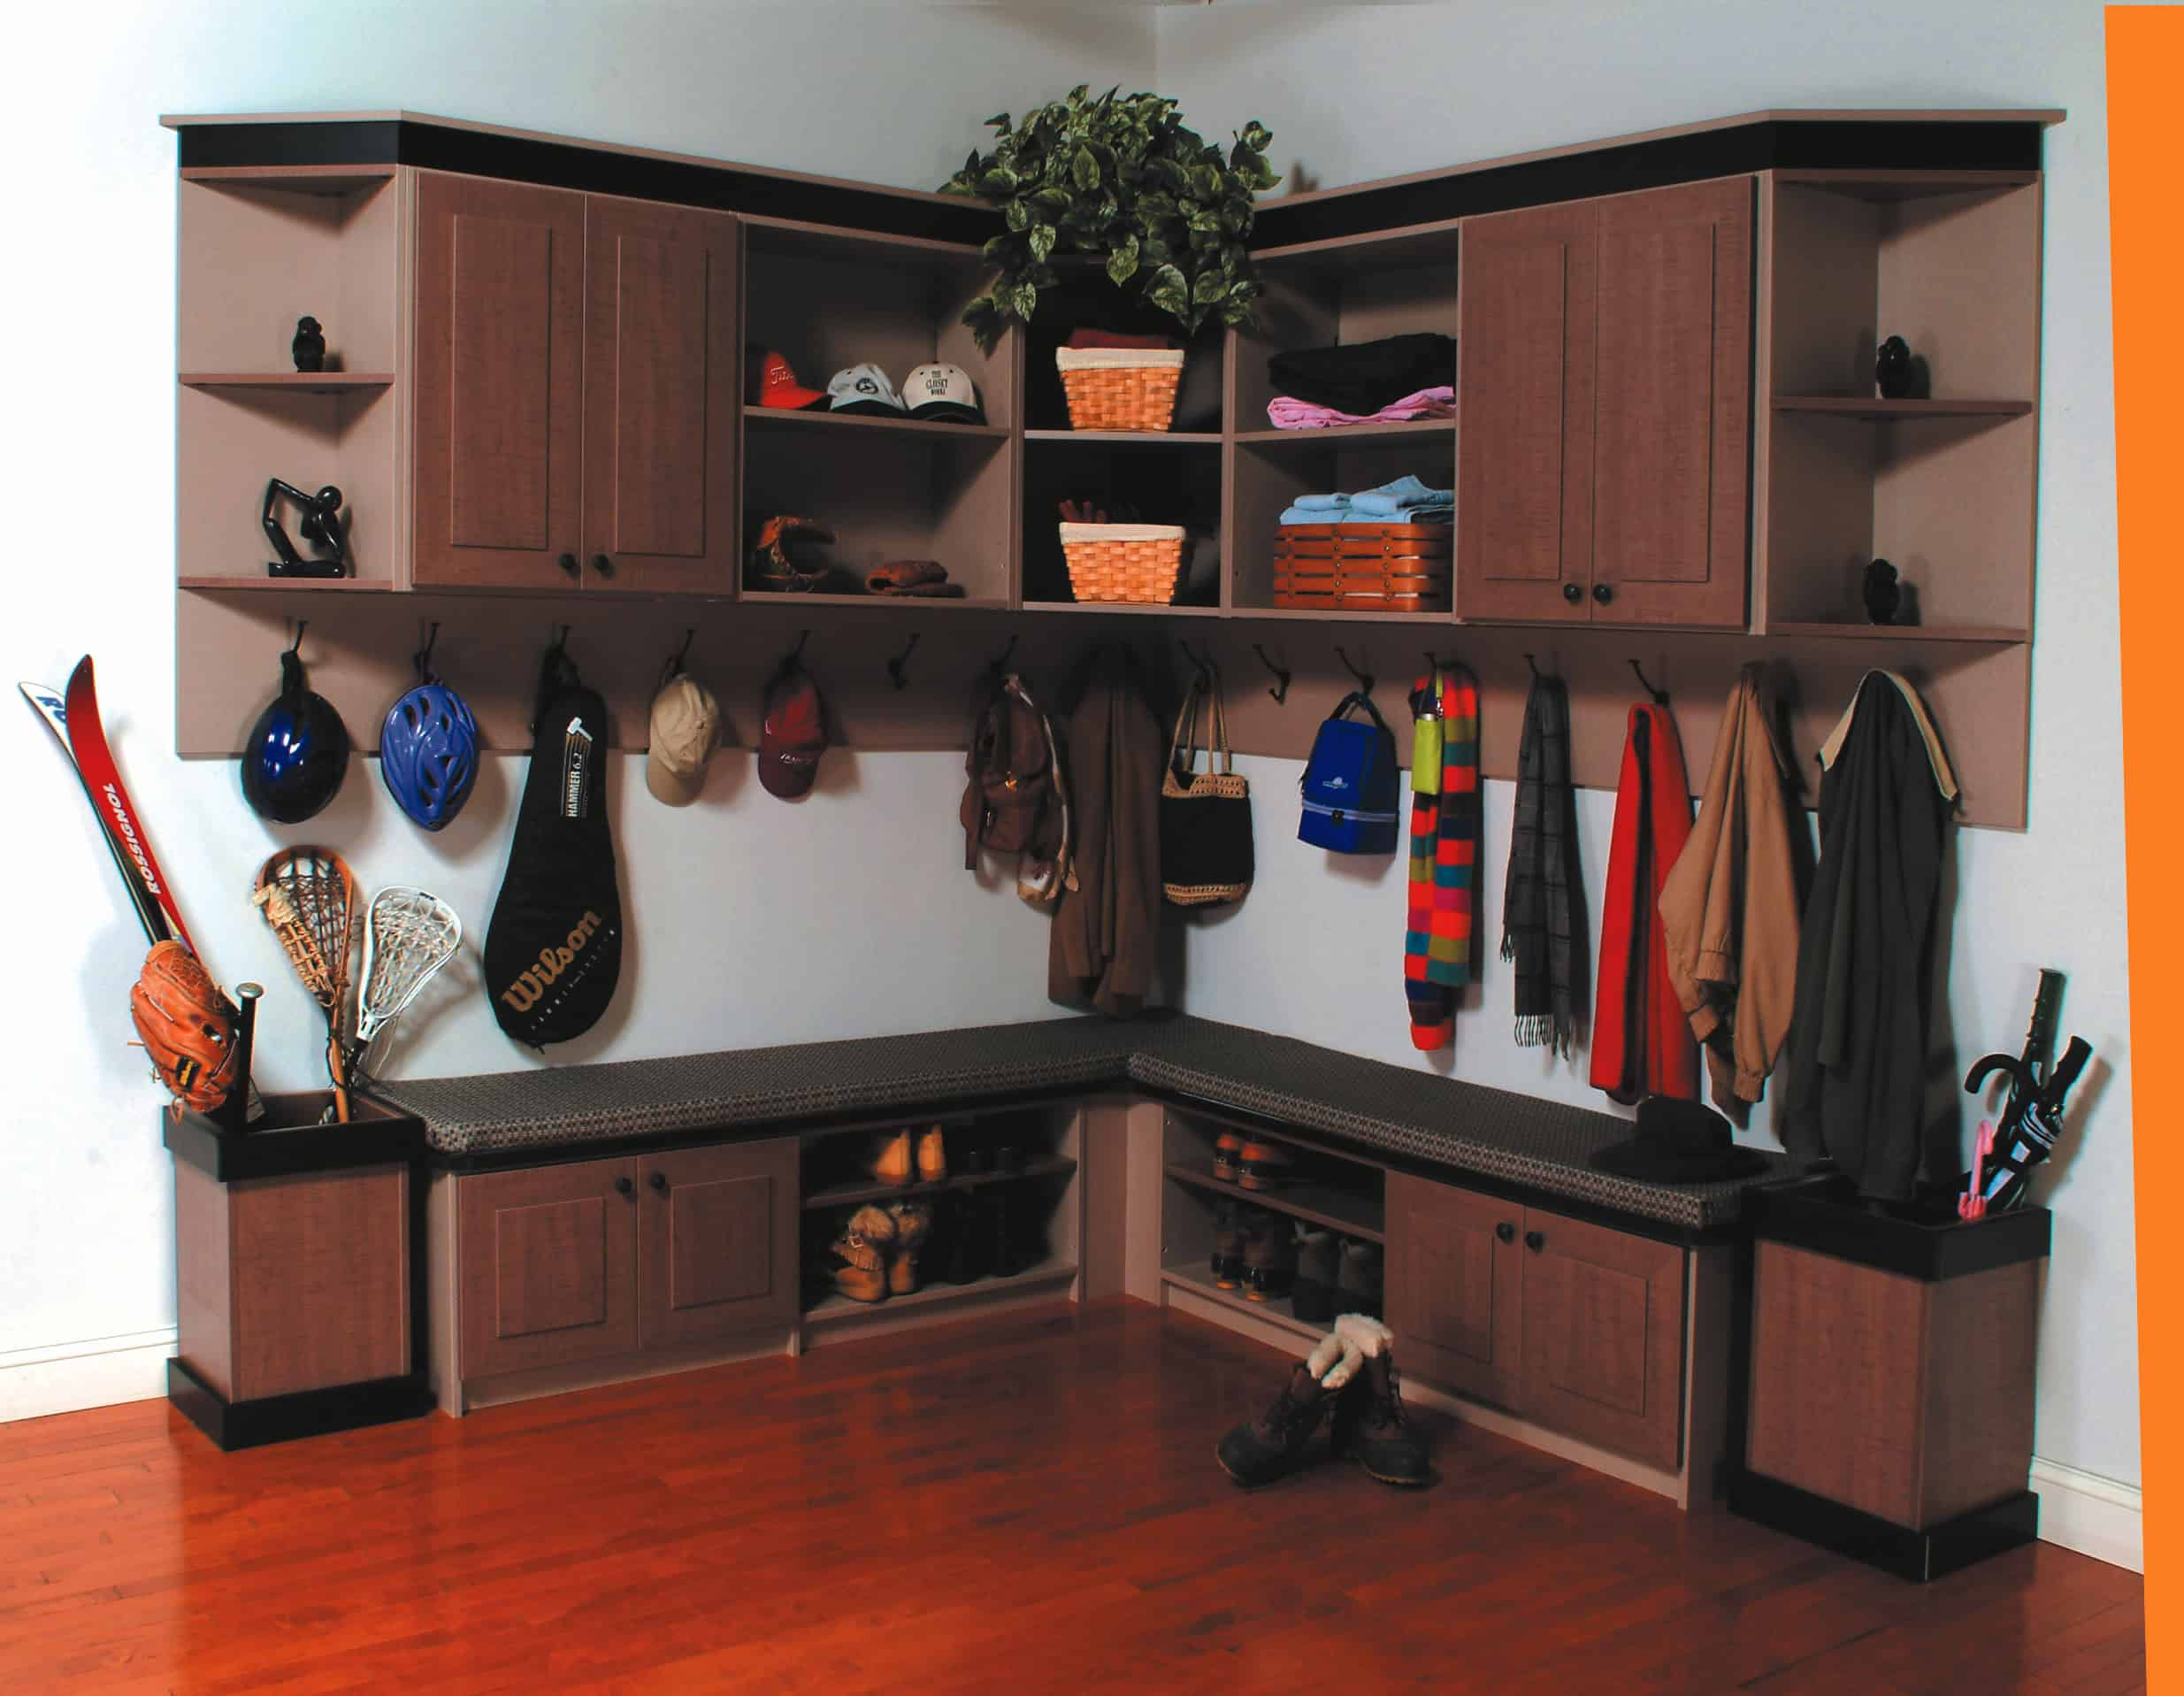 Small mudroom with built-in seating, upper and lower cabinets, open shelving, wall hooks, and storage boxes for umbrellas and other items.